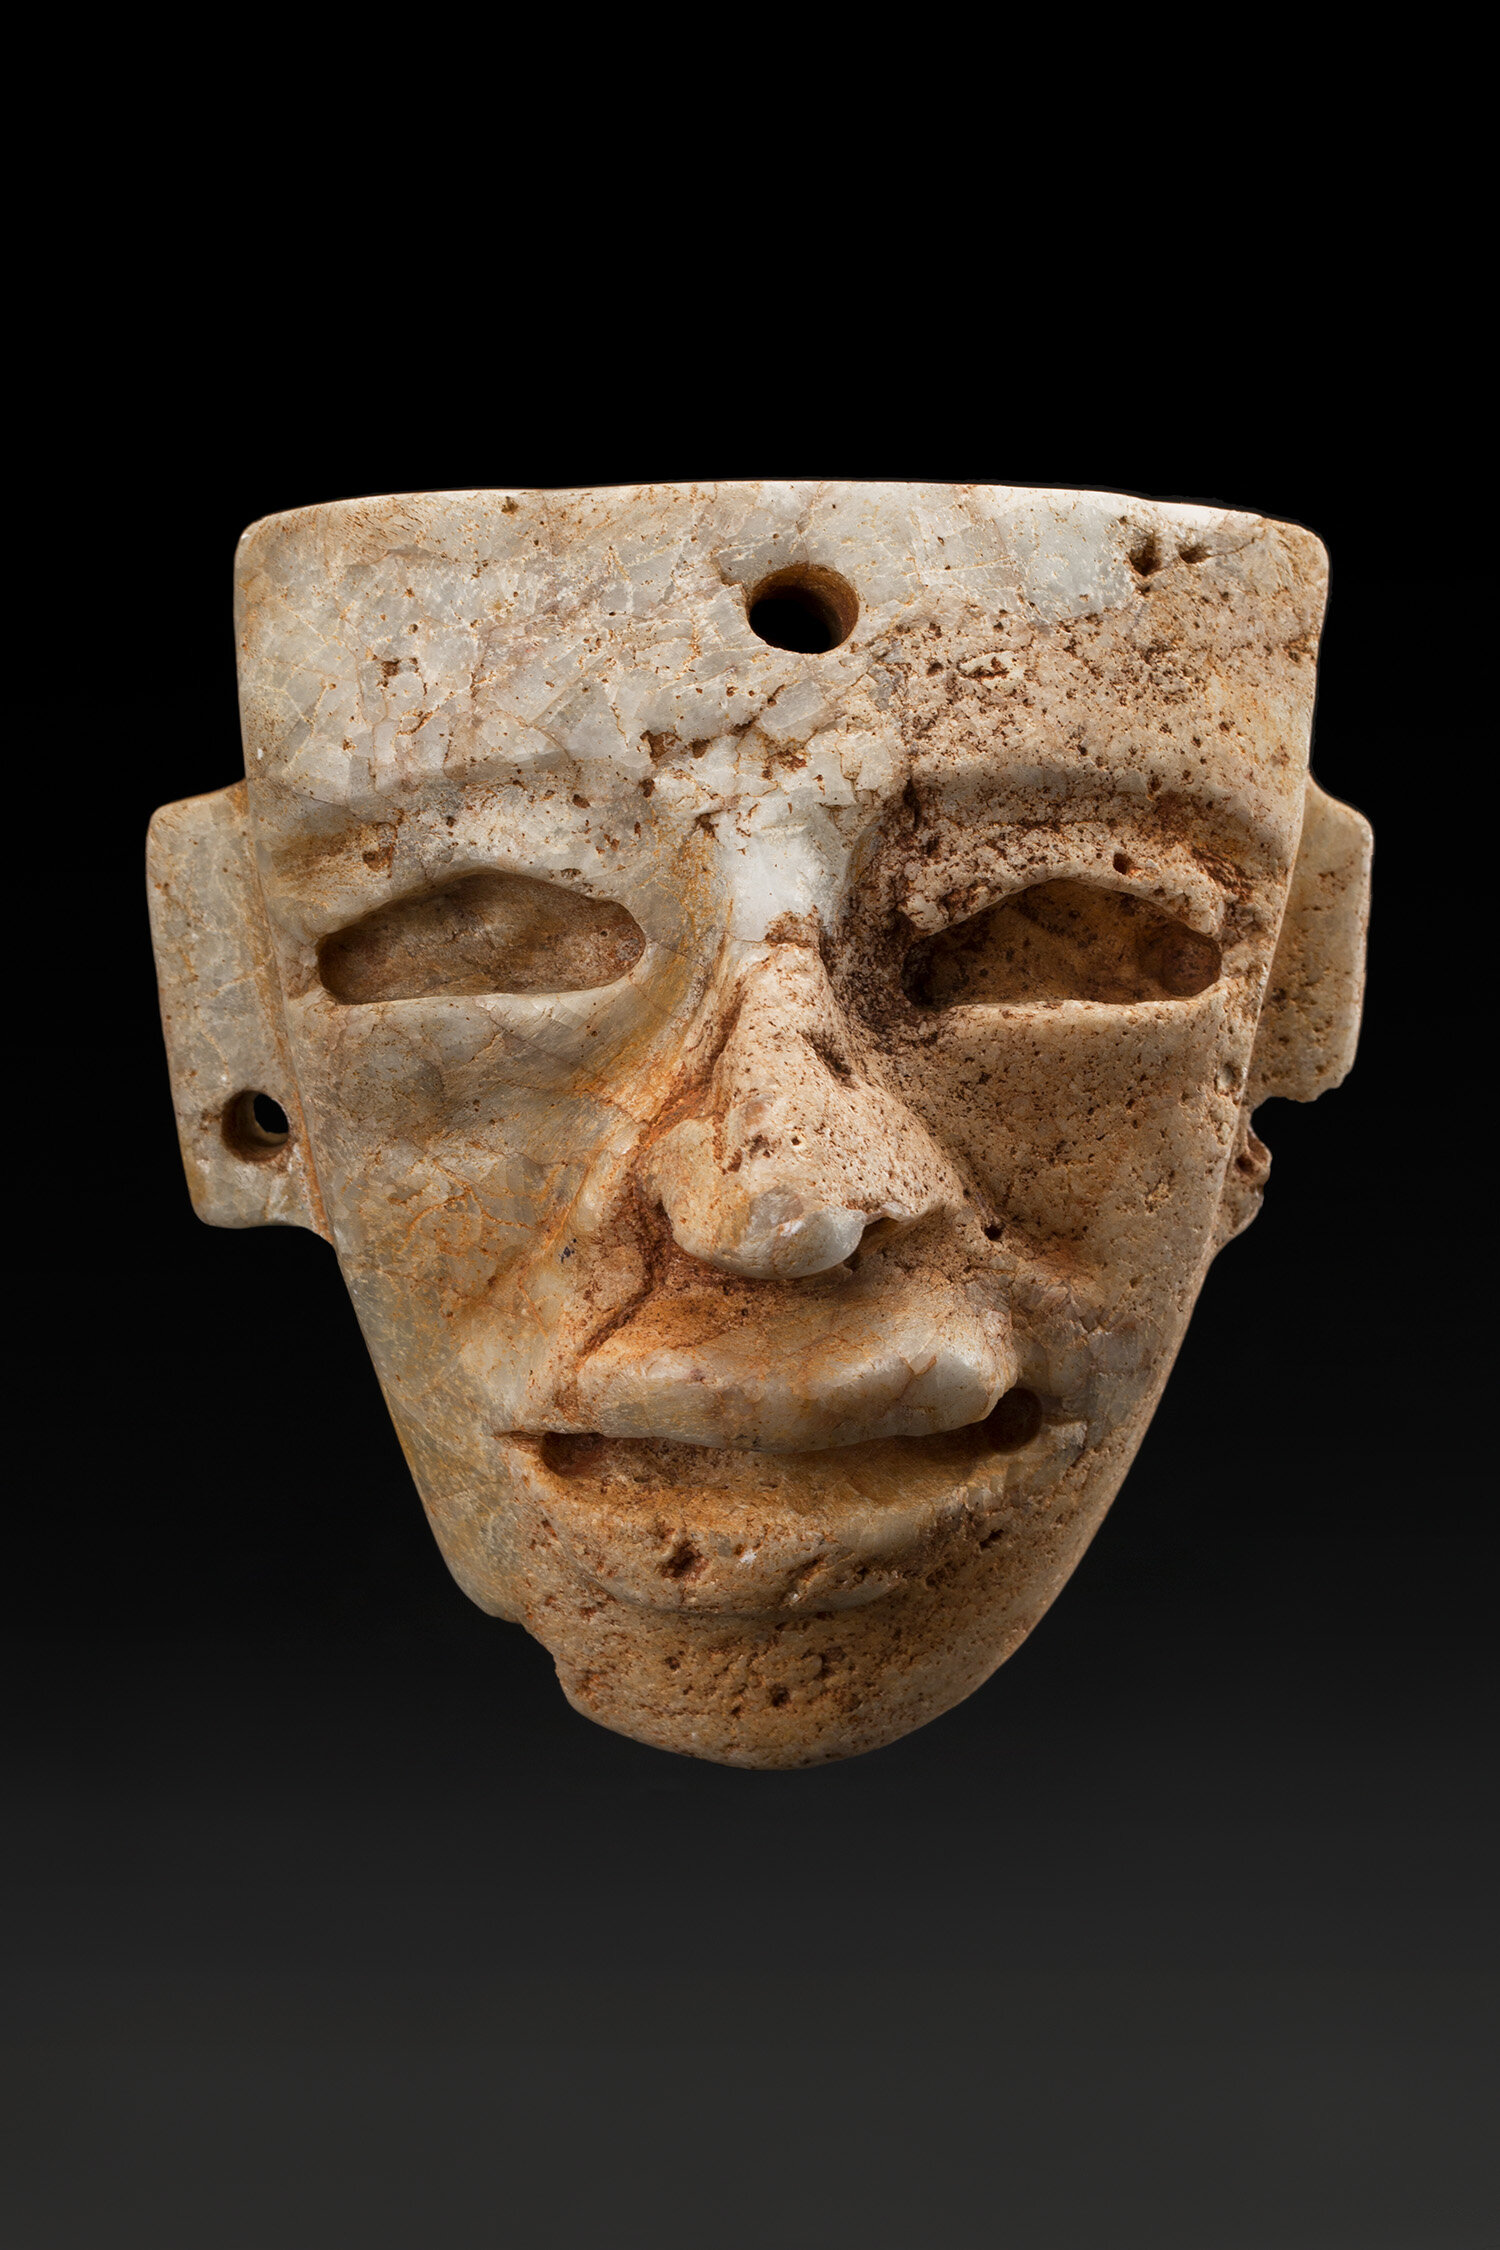 Masks  Teotihuacan  , 250 450 CE Stone 4.5 x 4.25 x 2.5 inches 11.4 x 10.8 x 6.4 cm M 403